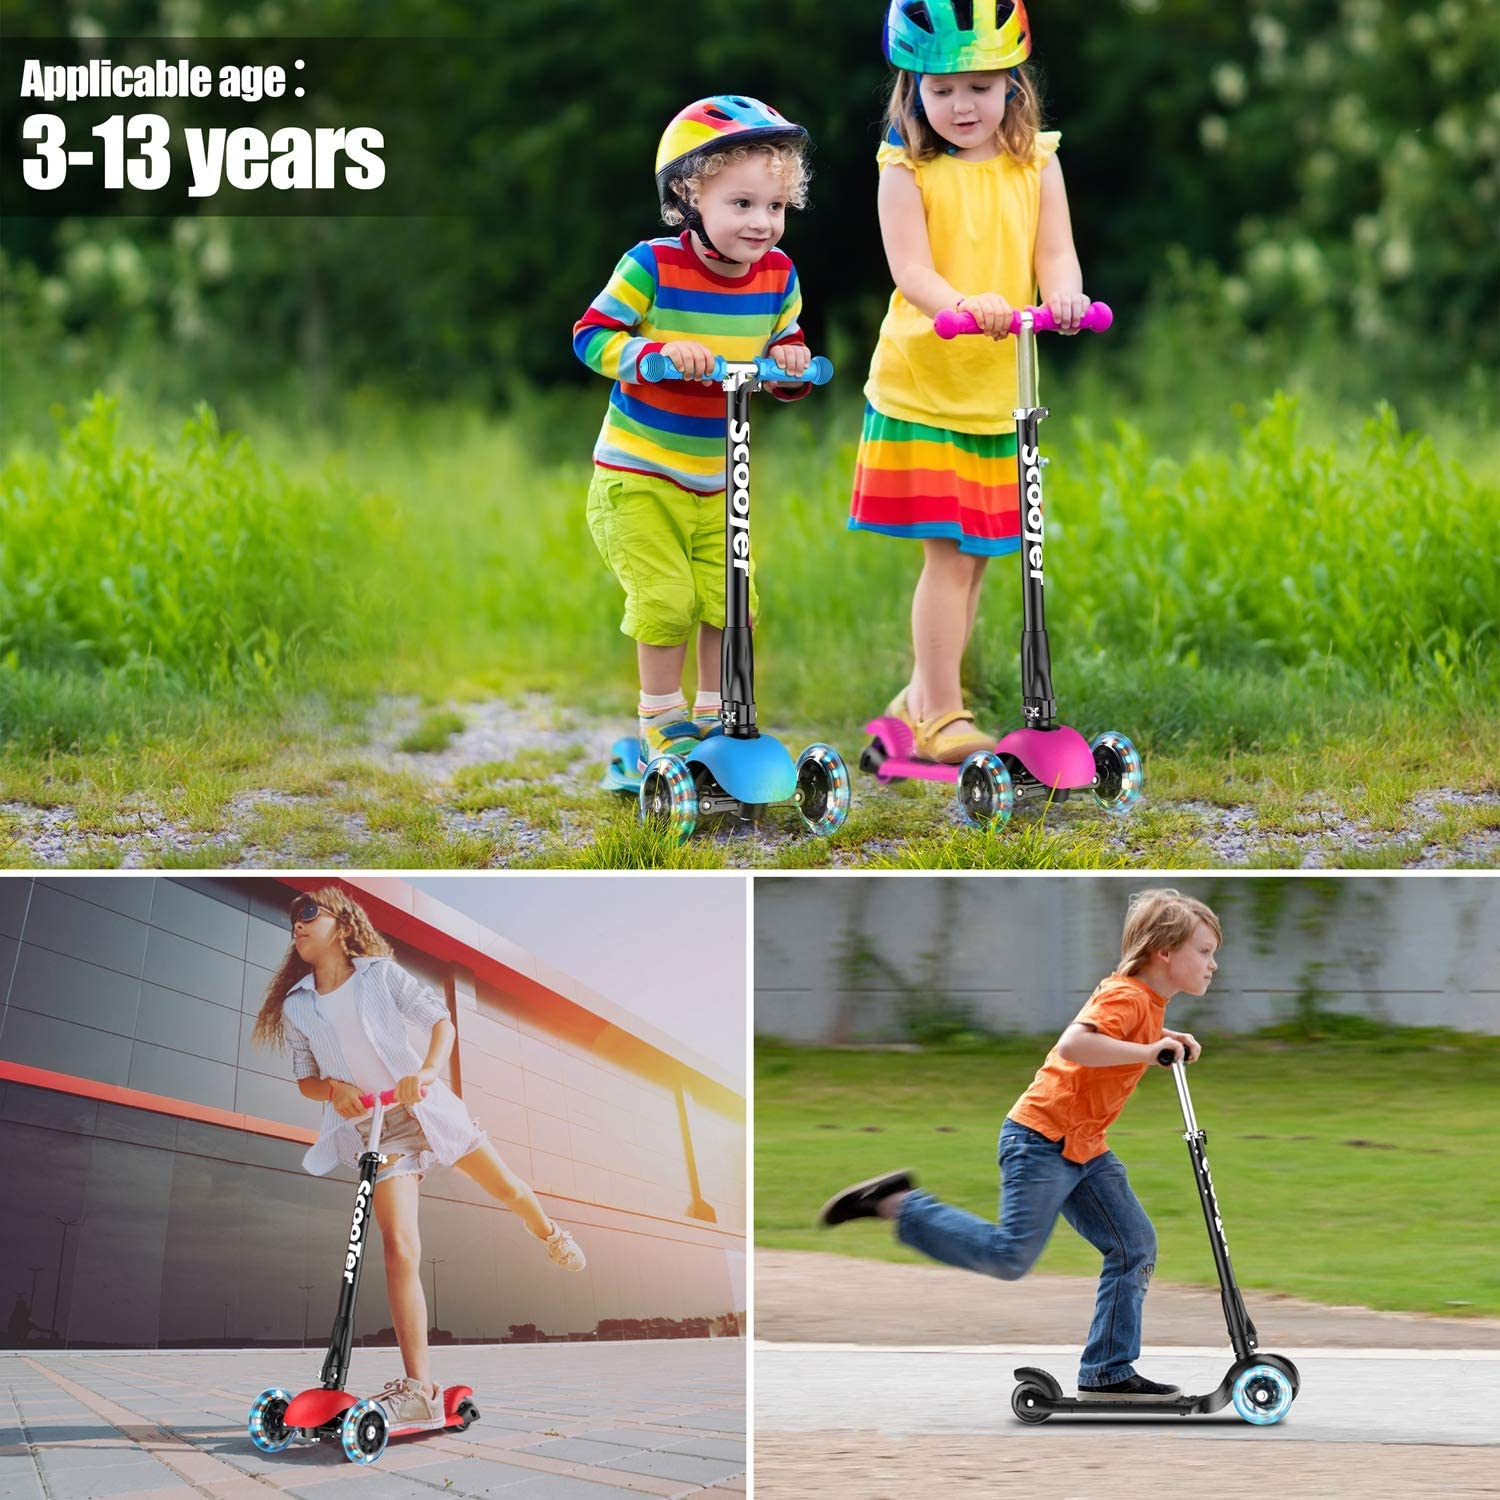 Pink Banne Scooter Height Adjustable Lean to Steer Flashing PU Wheels 3 Wheel Kick Scooters for Kids Boys Girls